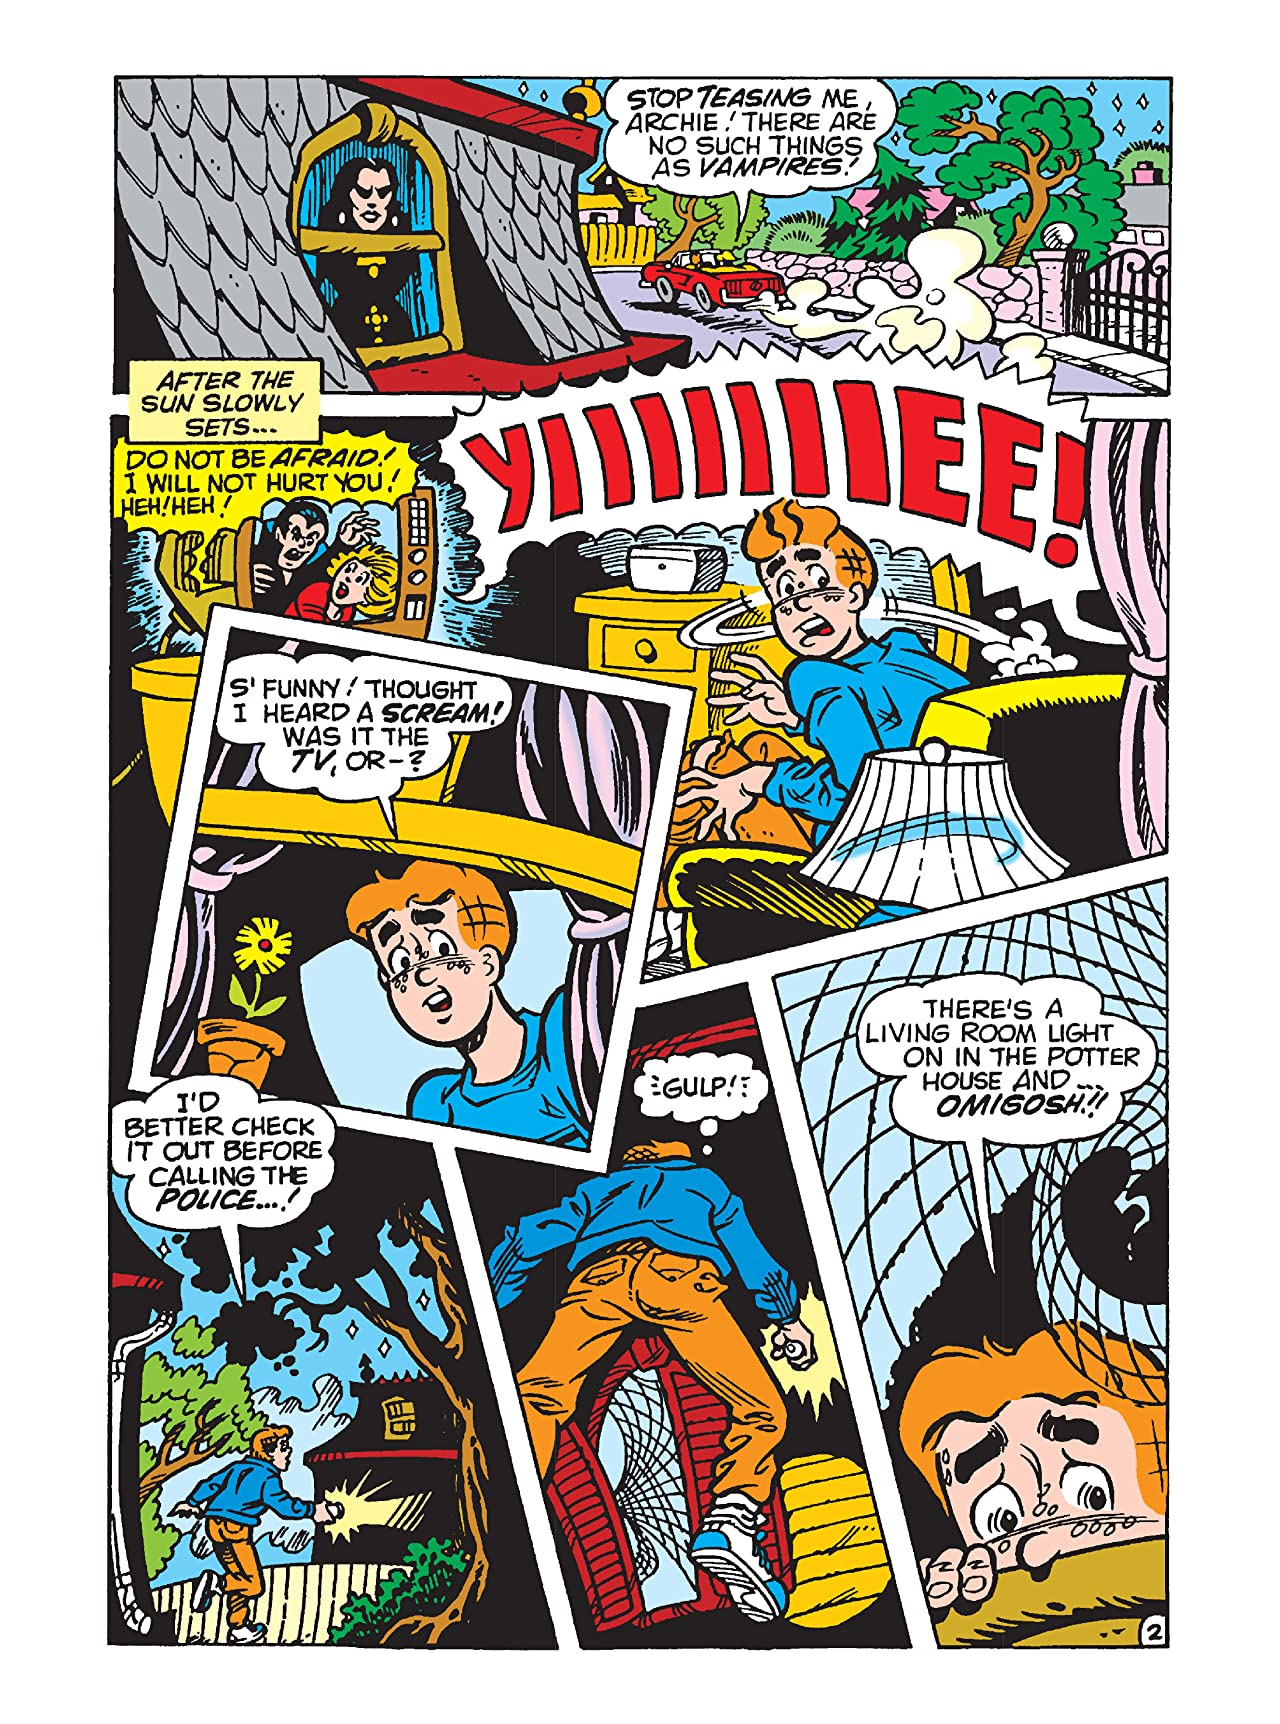 World of Archie Double Digest #32